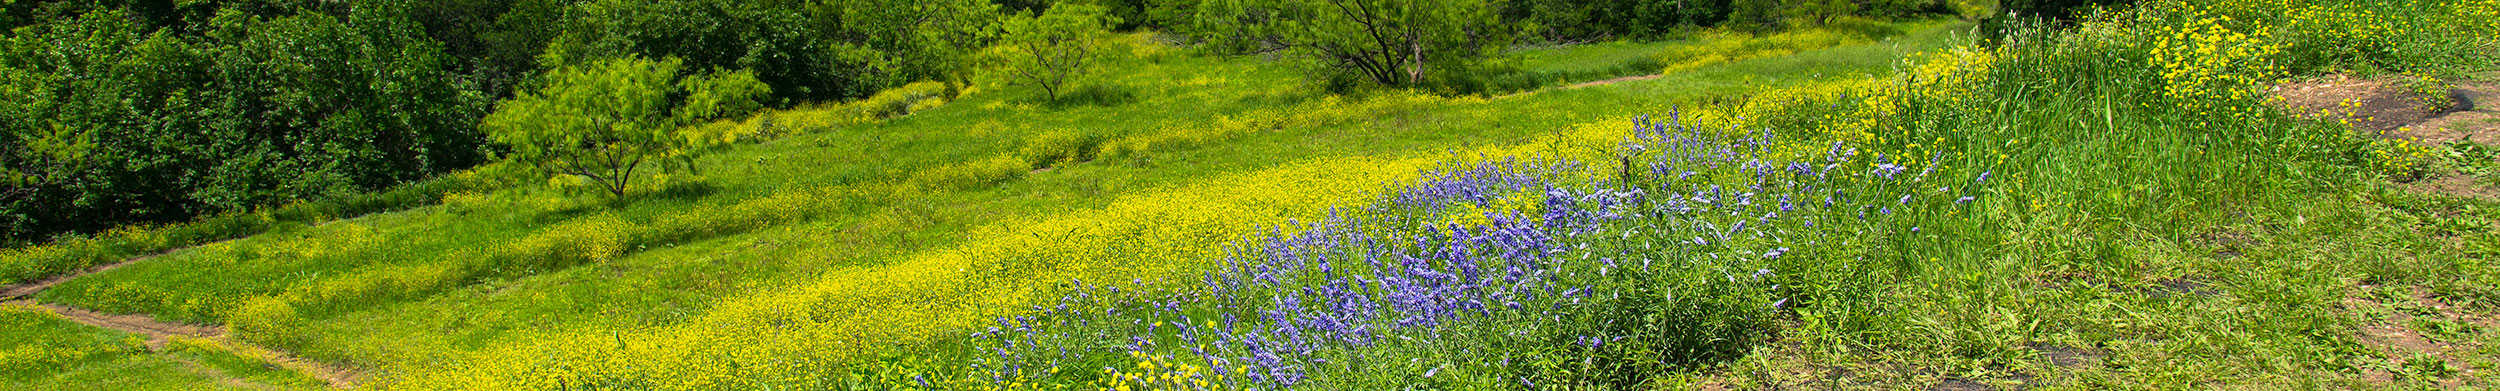 Wildflowers in north Texas